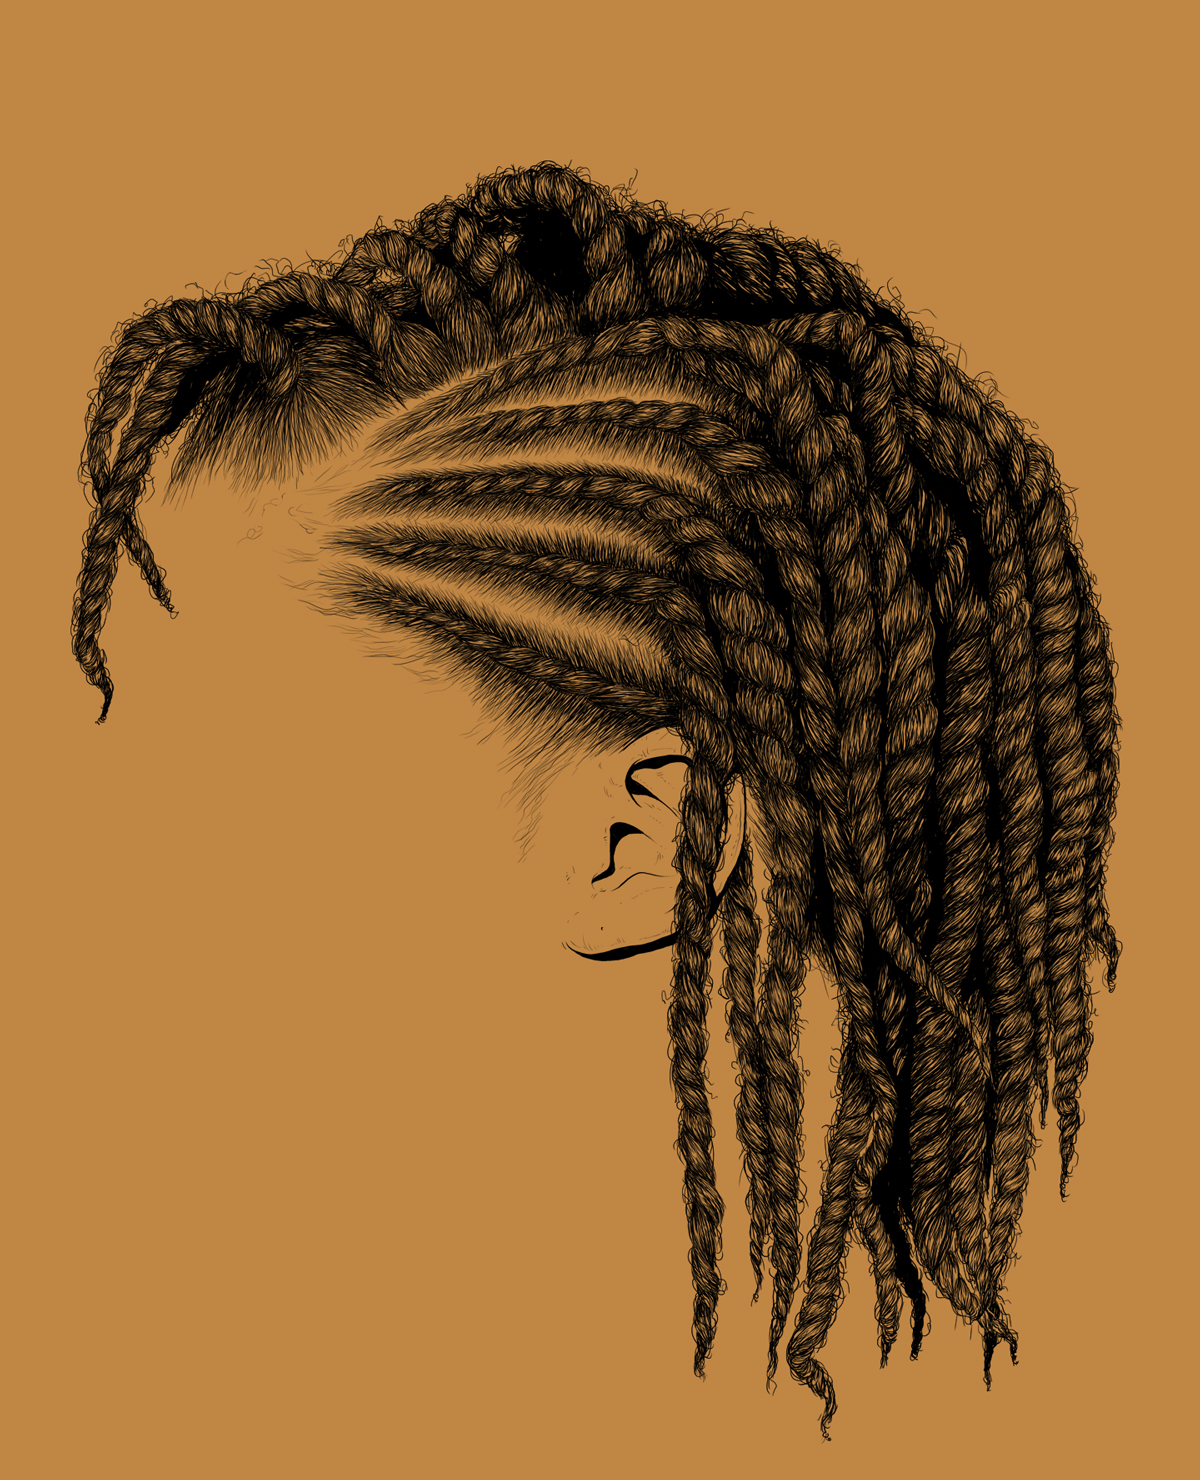 detail, hair, draw, illustrate, vectorize